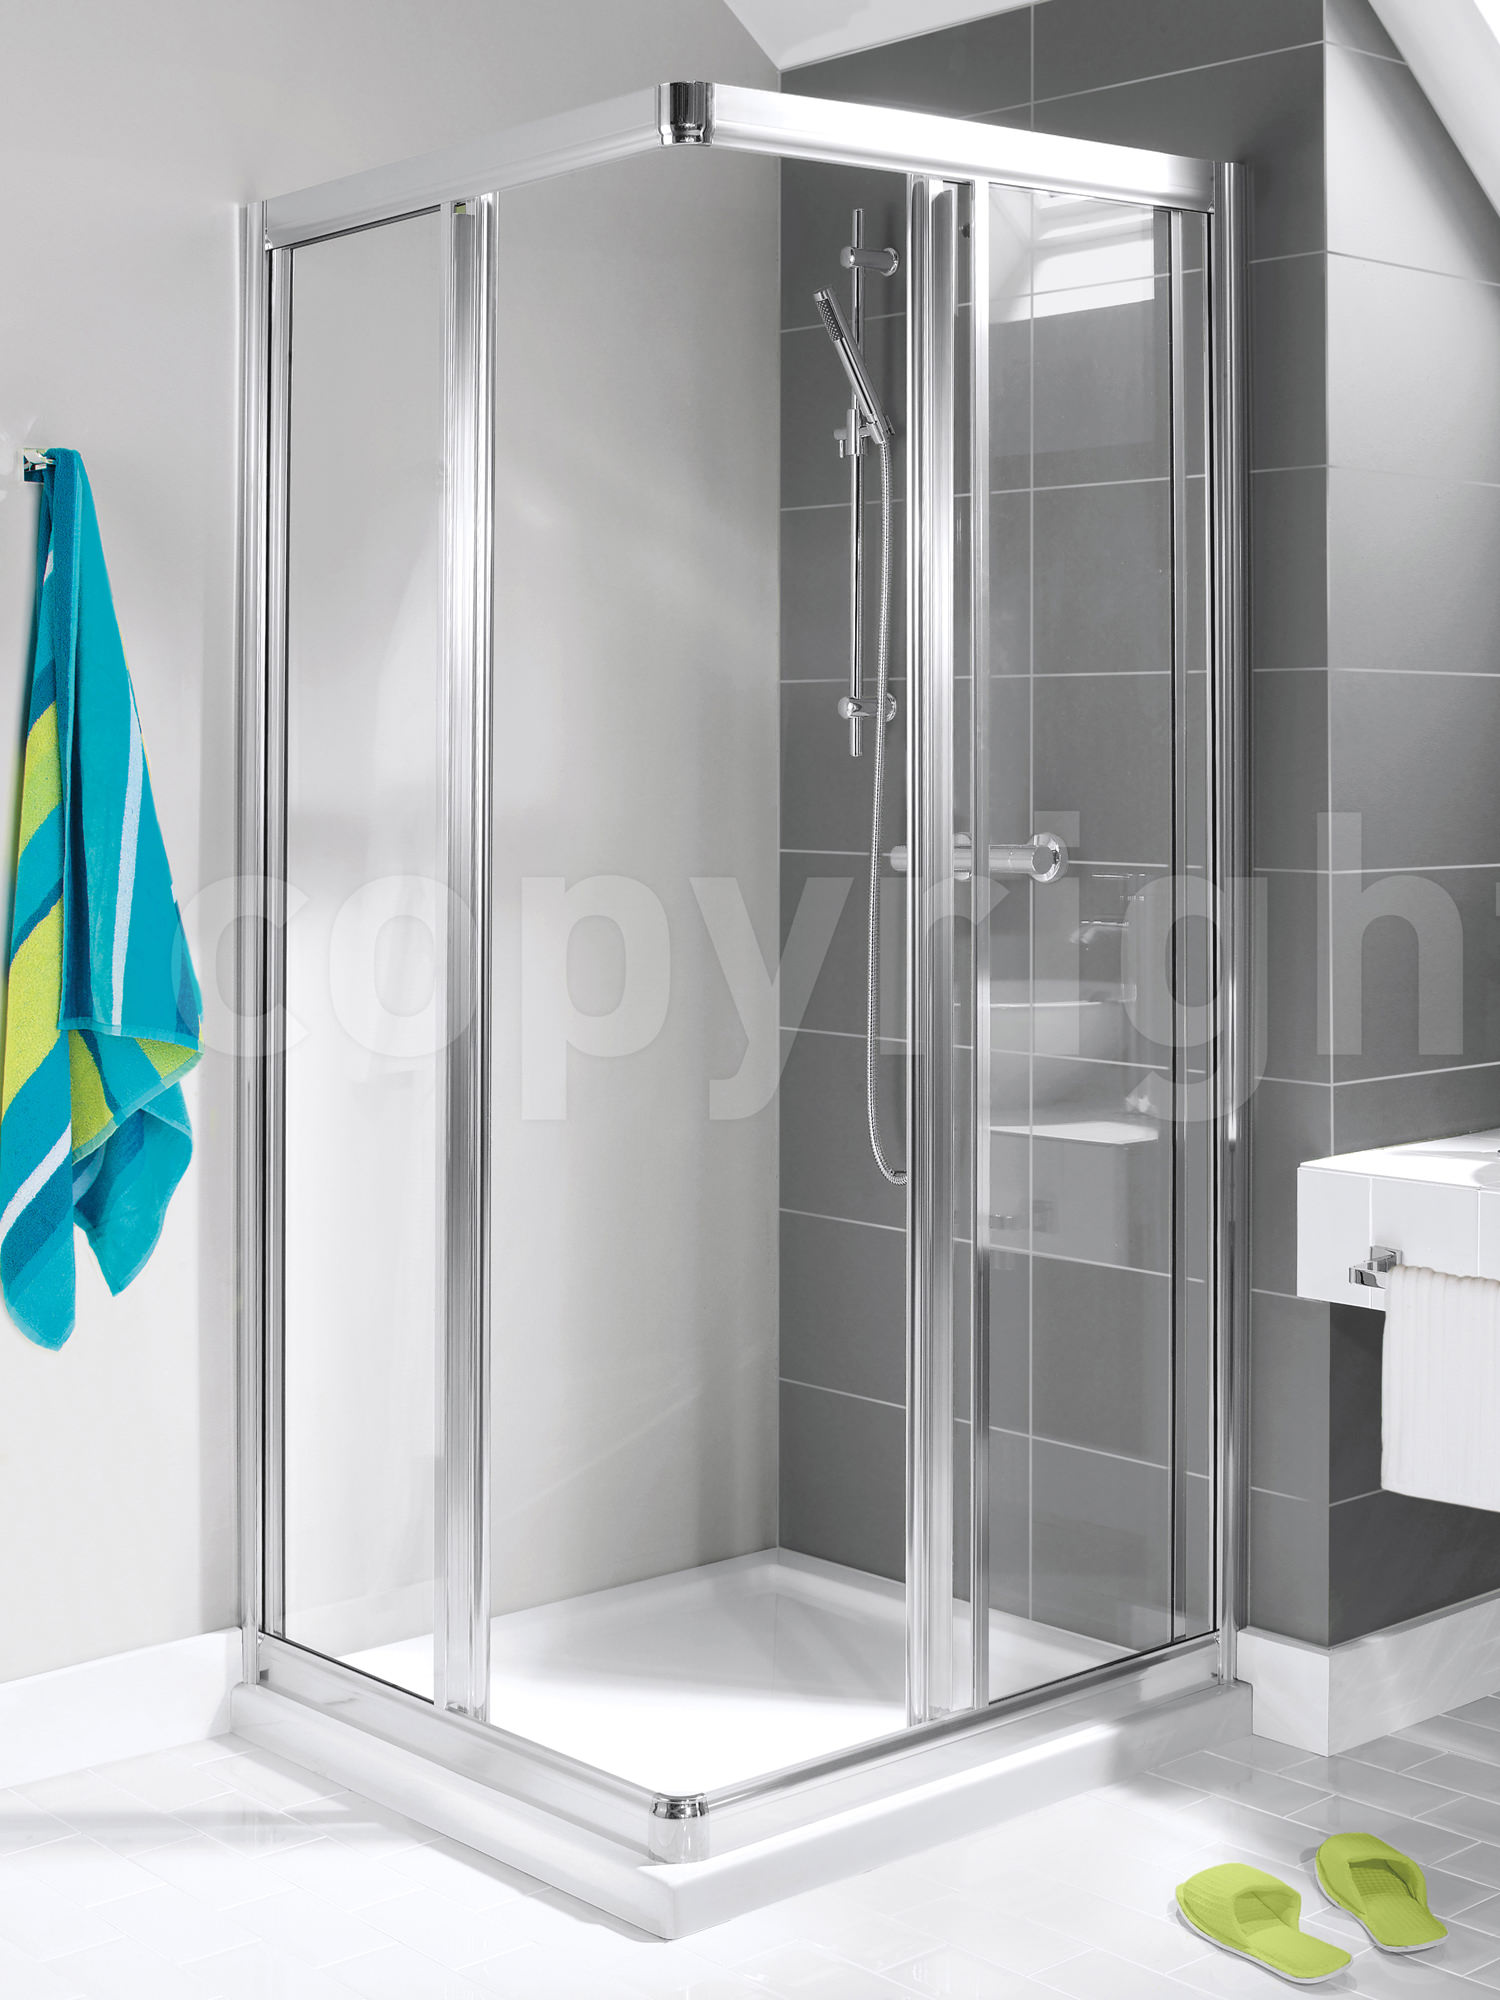 Shower Cubicles | Shower Cabins Starts from £80 | QS Supplies UK